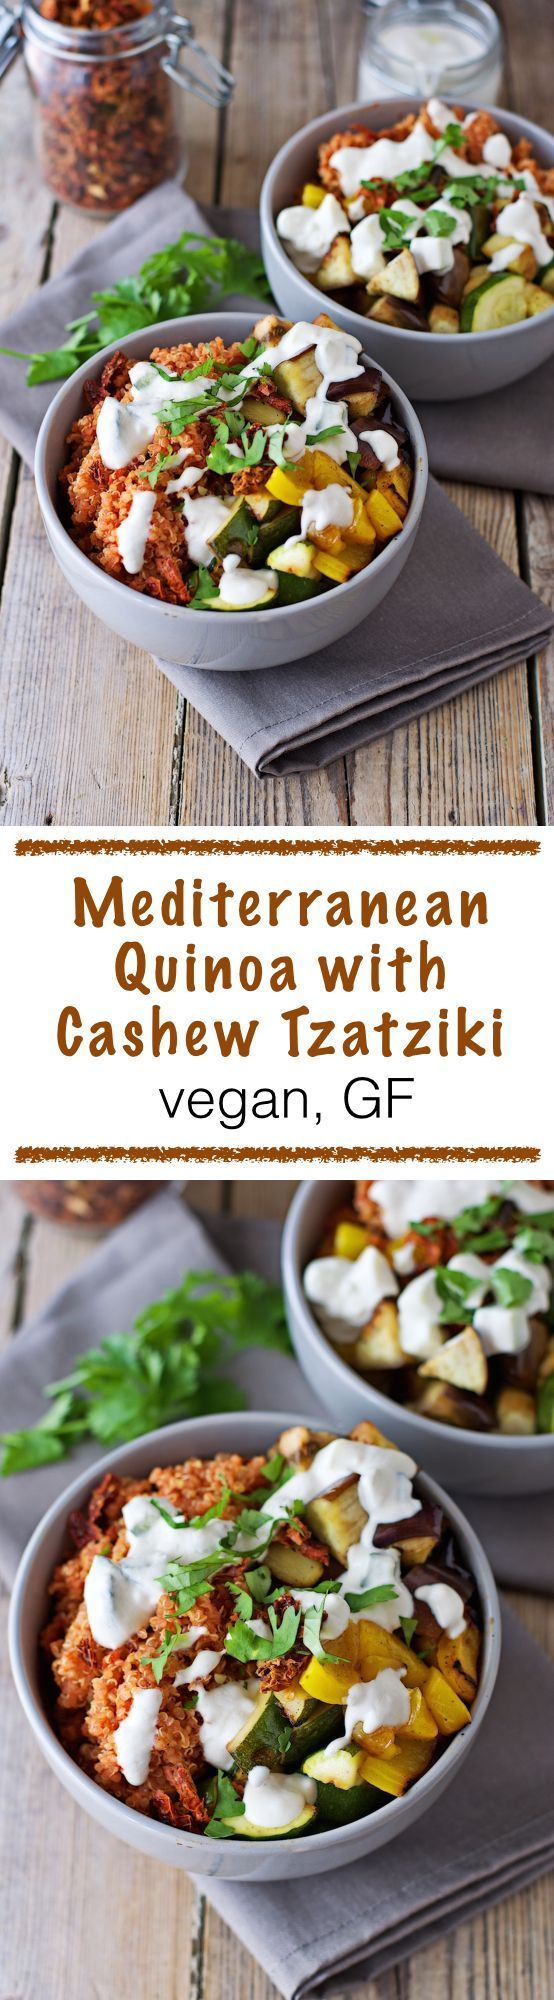 When during a recent extremely hot week I was thinking about a new recipe that would be light and fitting to the sunny weather, I came up with this #vegan and #glutenfree Mediterranean Quinoa with Cashew Tzatziki. It's a perfect #summer dish with freshly-roasted vegetables and a special tomato touch for the quinoa.